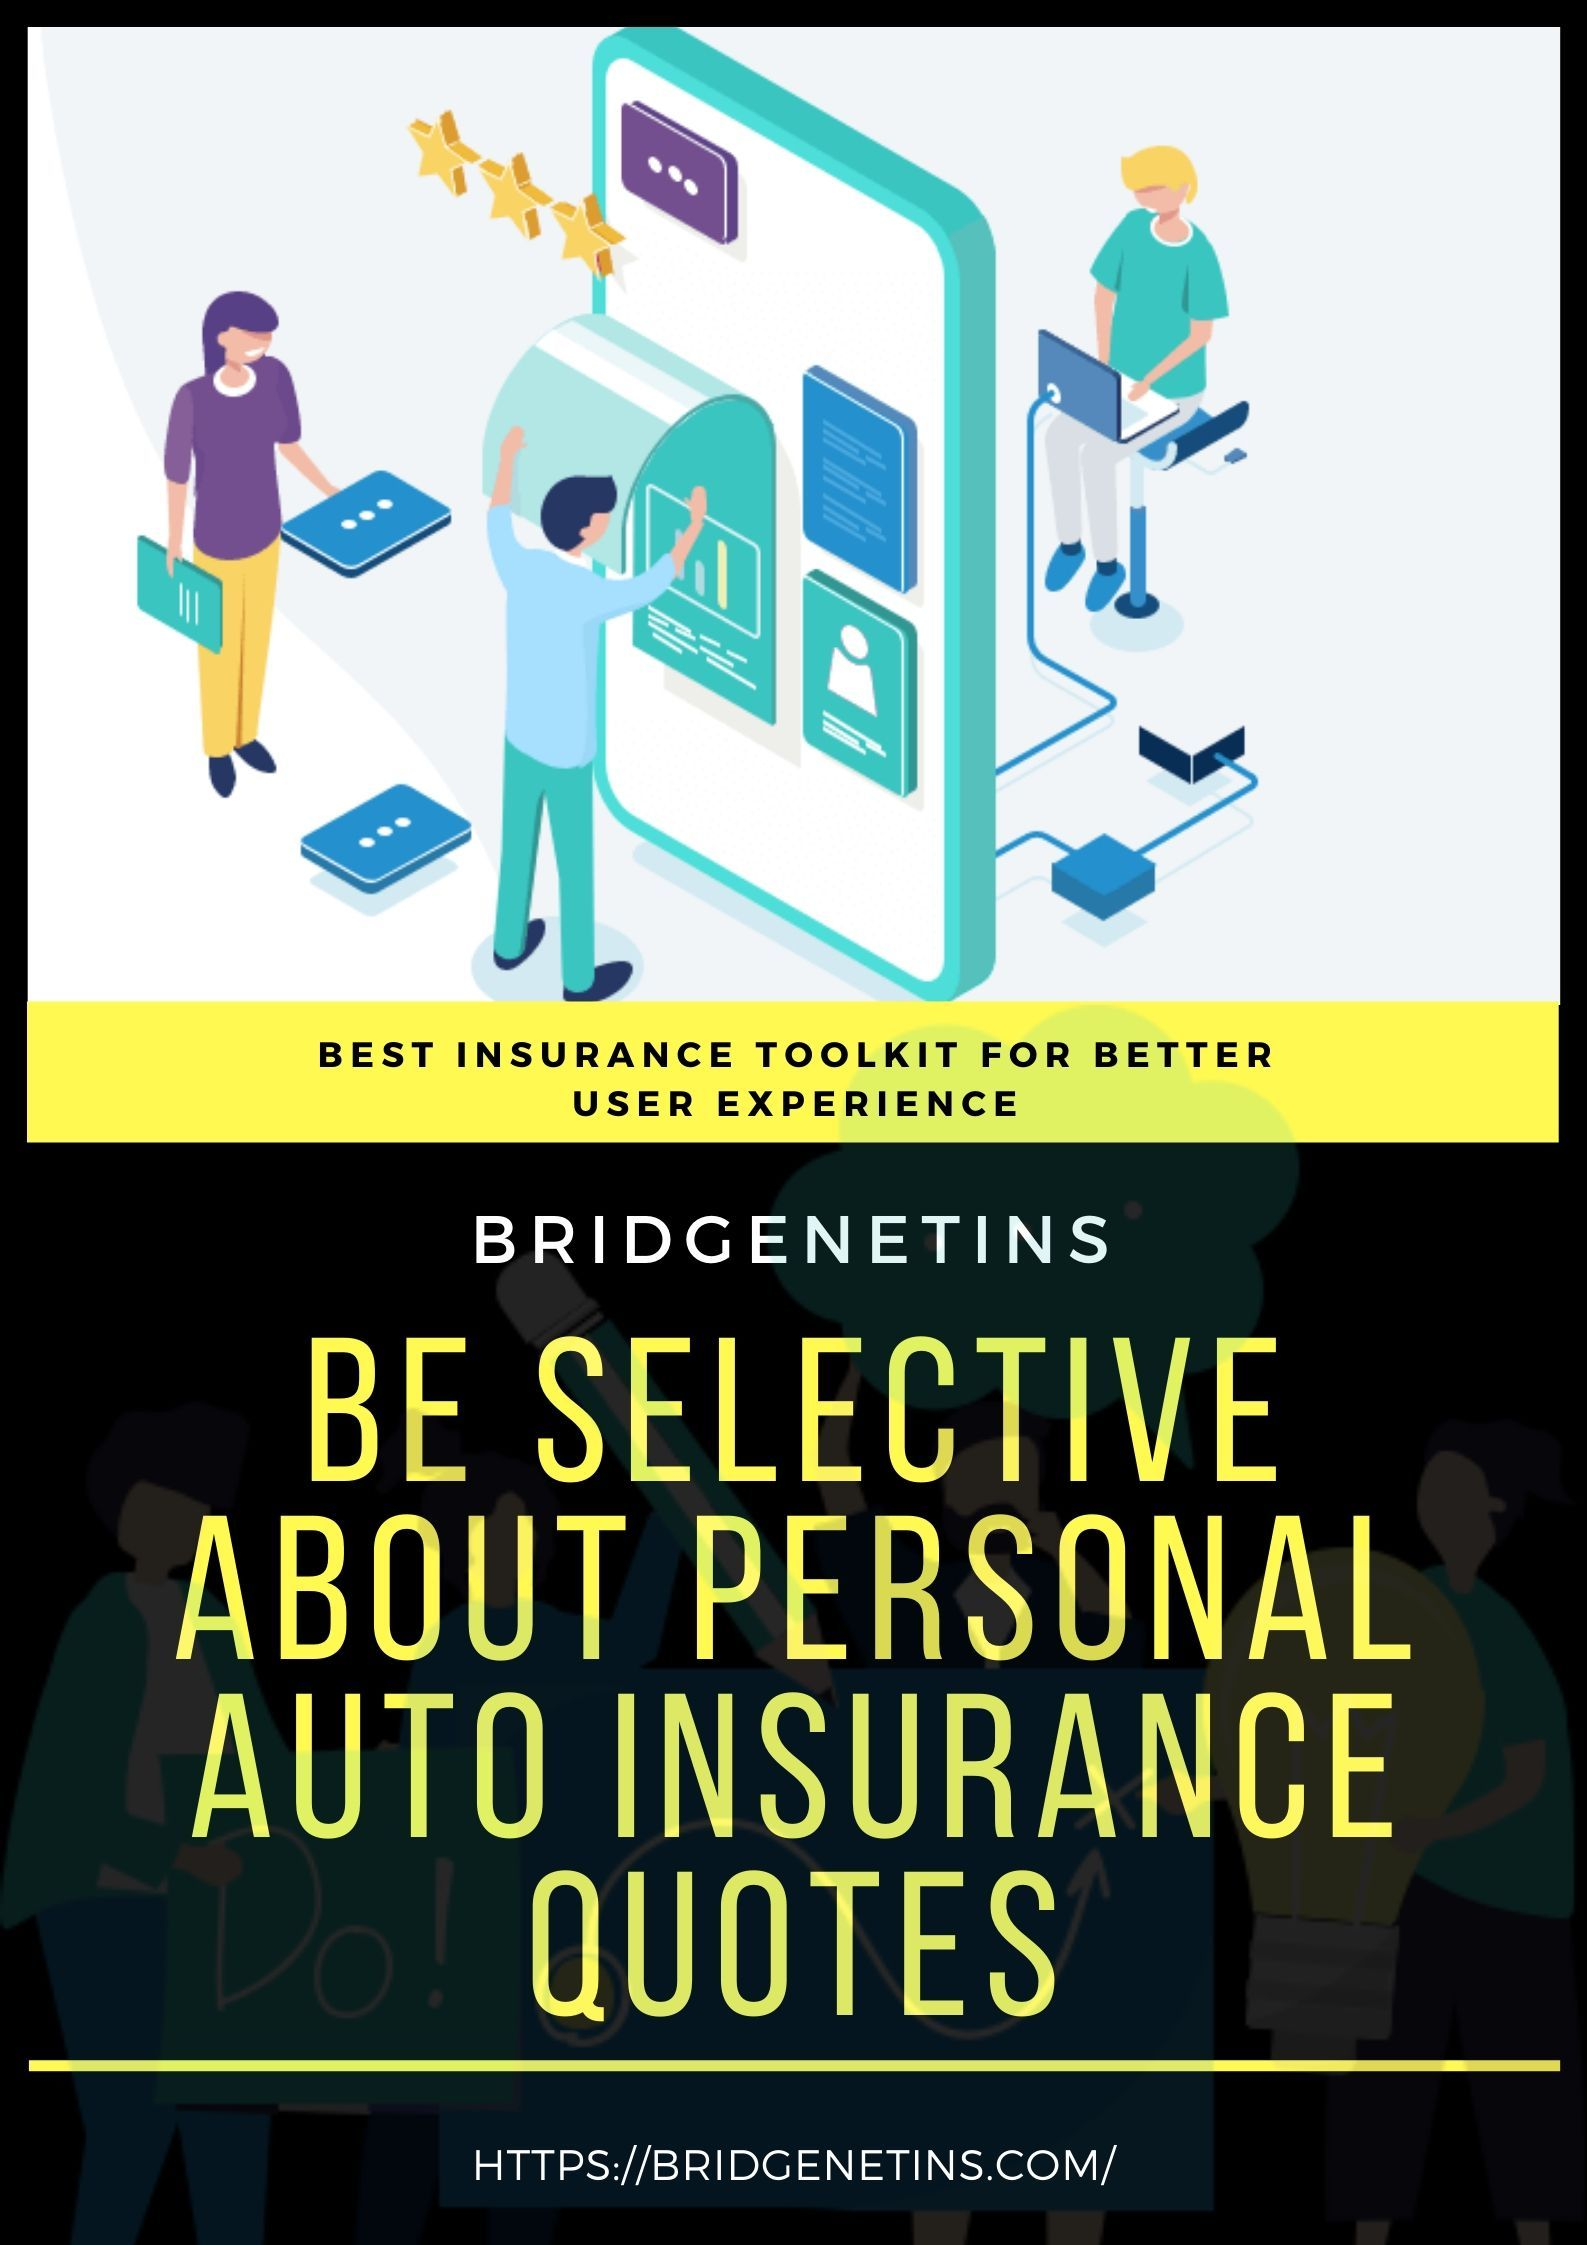 Be selective about personal auto insurance quotes in 2020